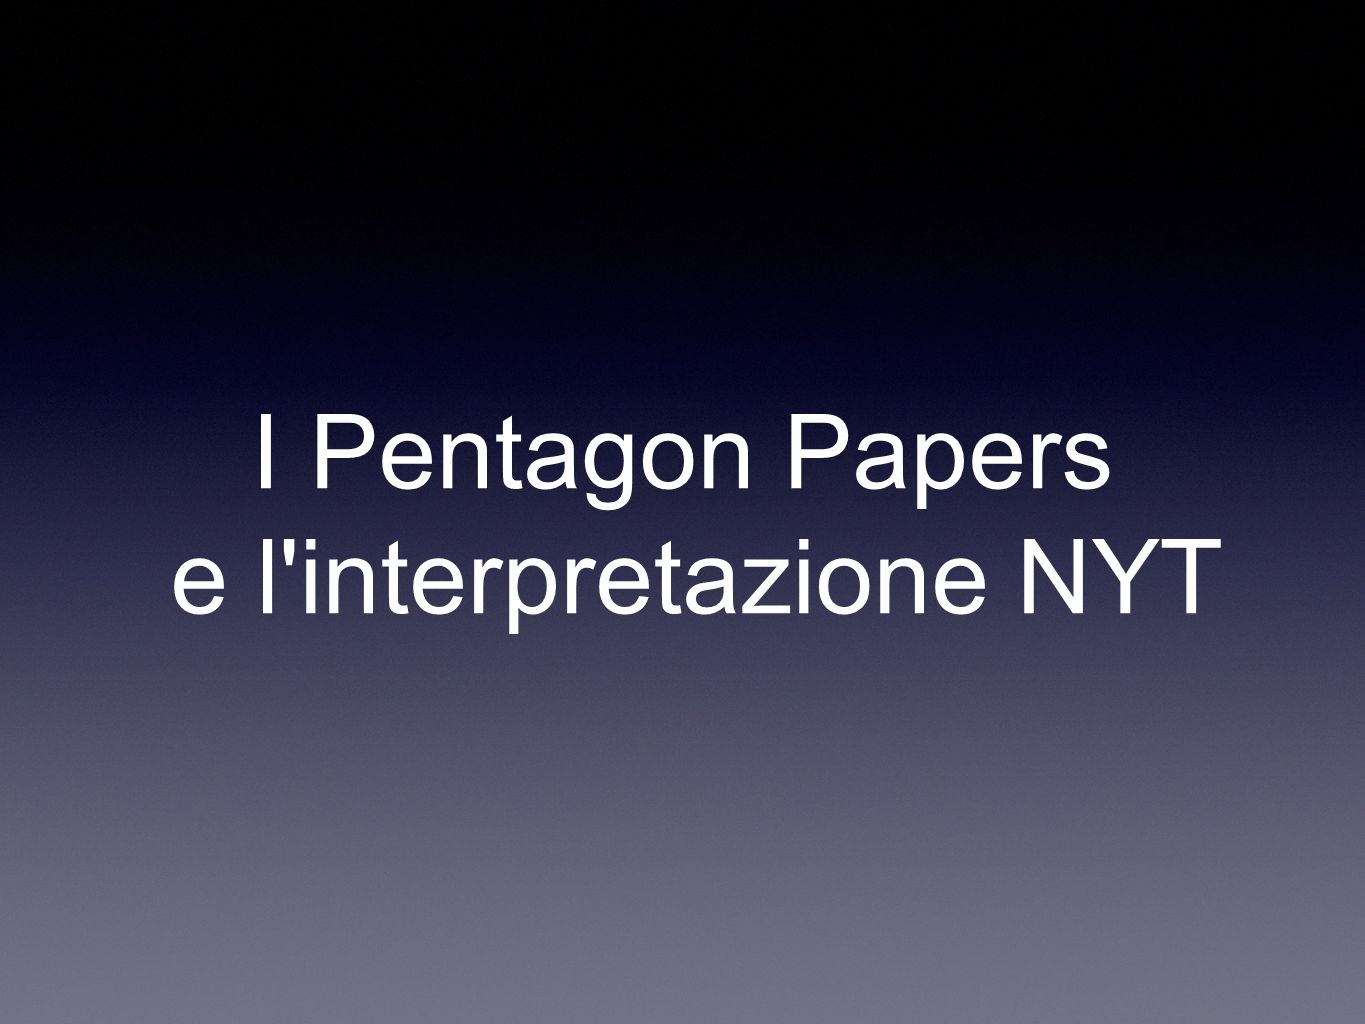 I Pentagon Papers e l interpretazione NYT